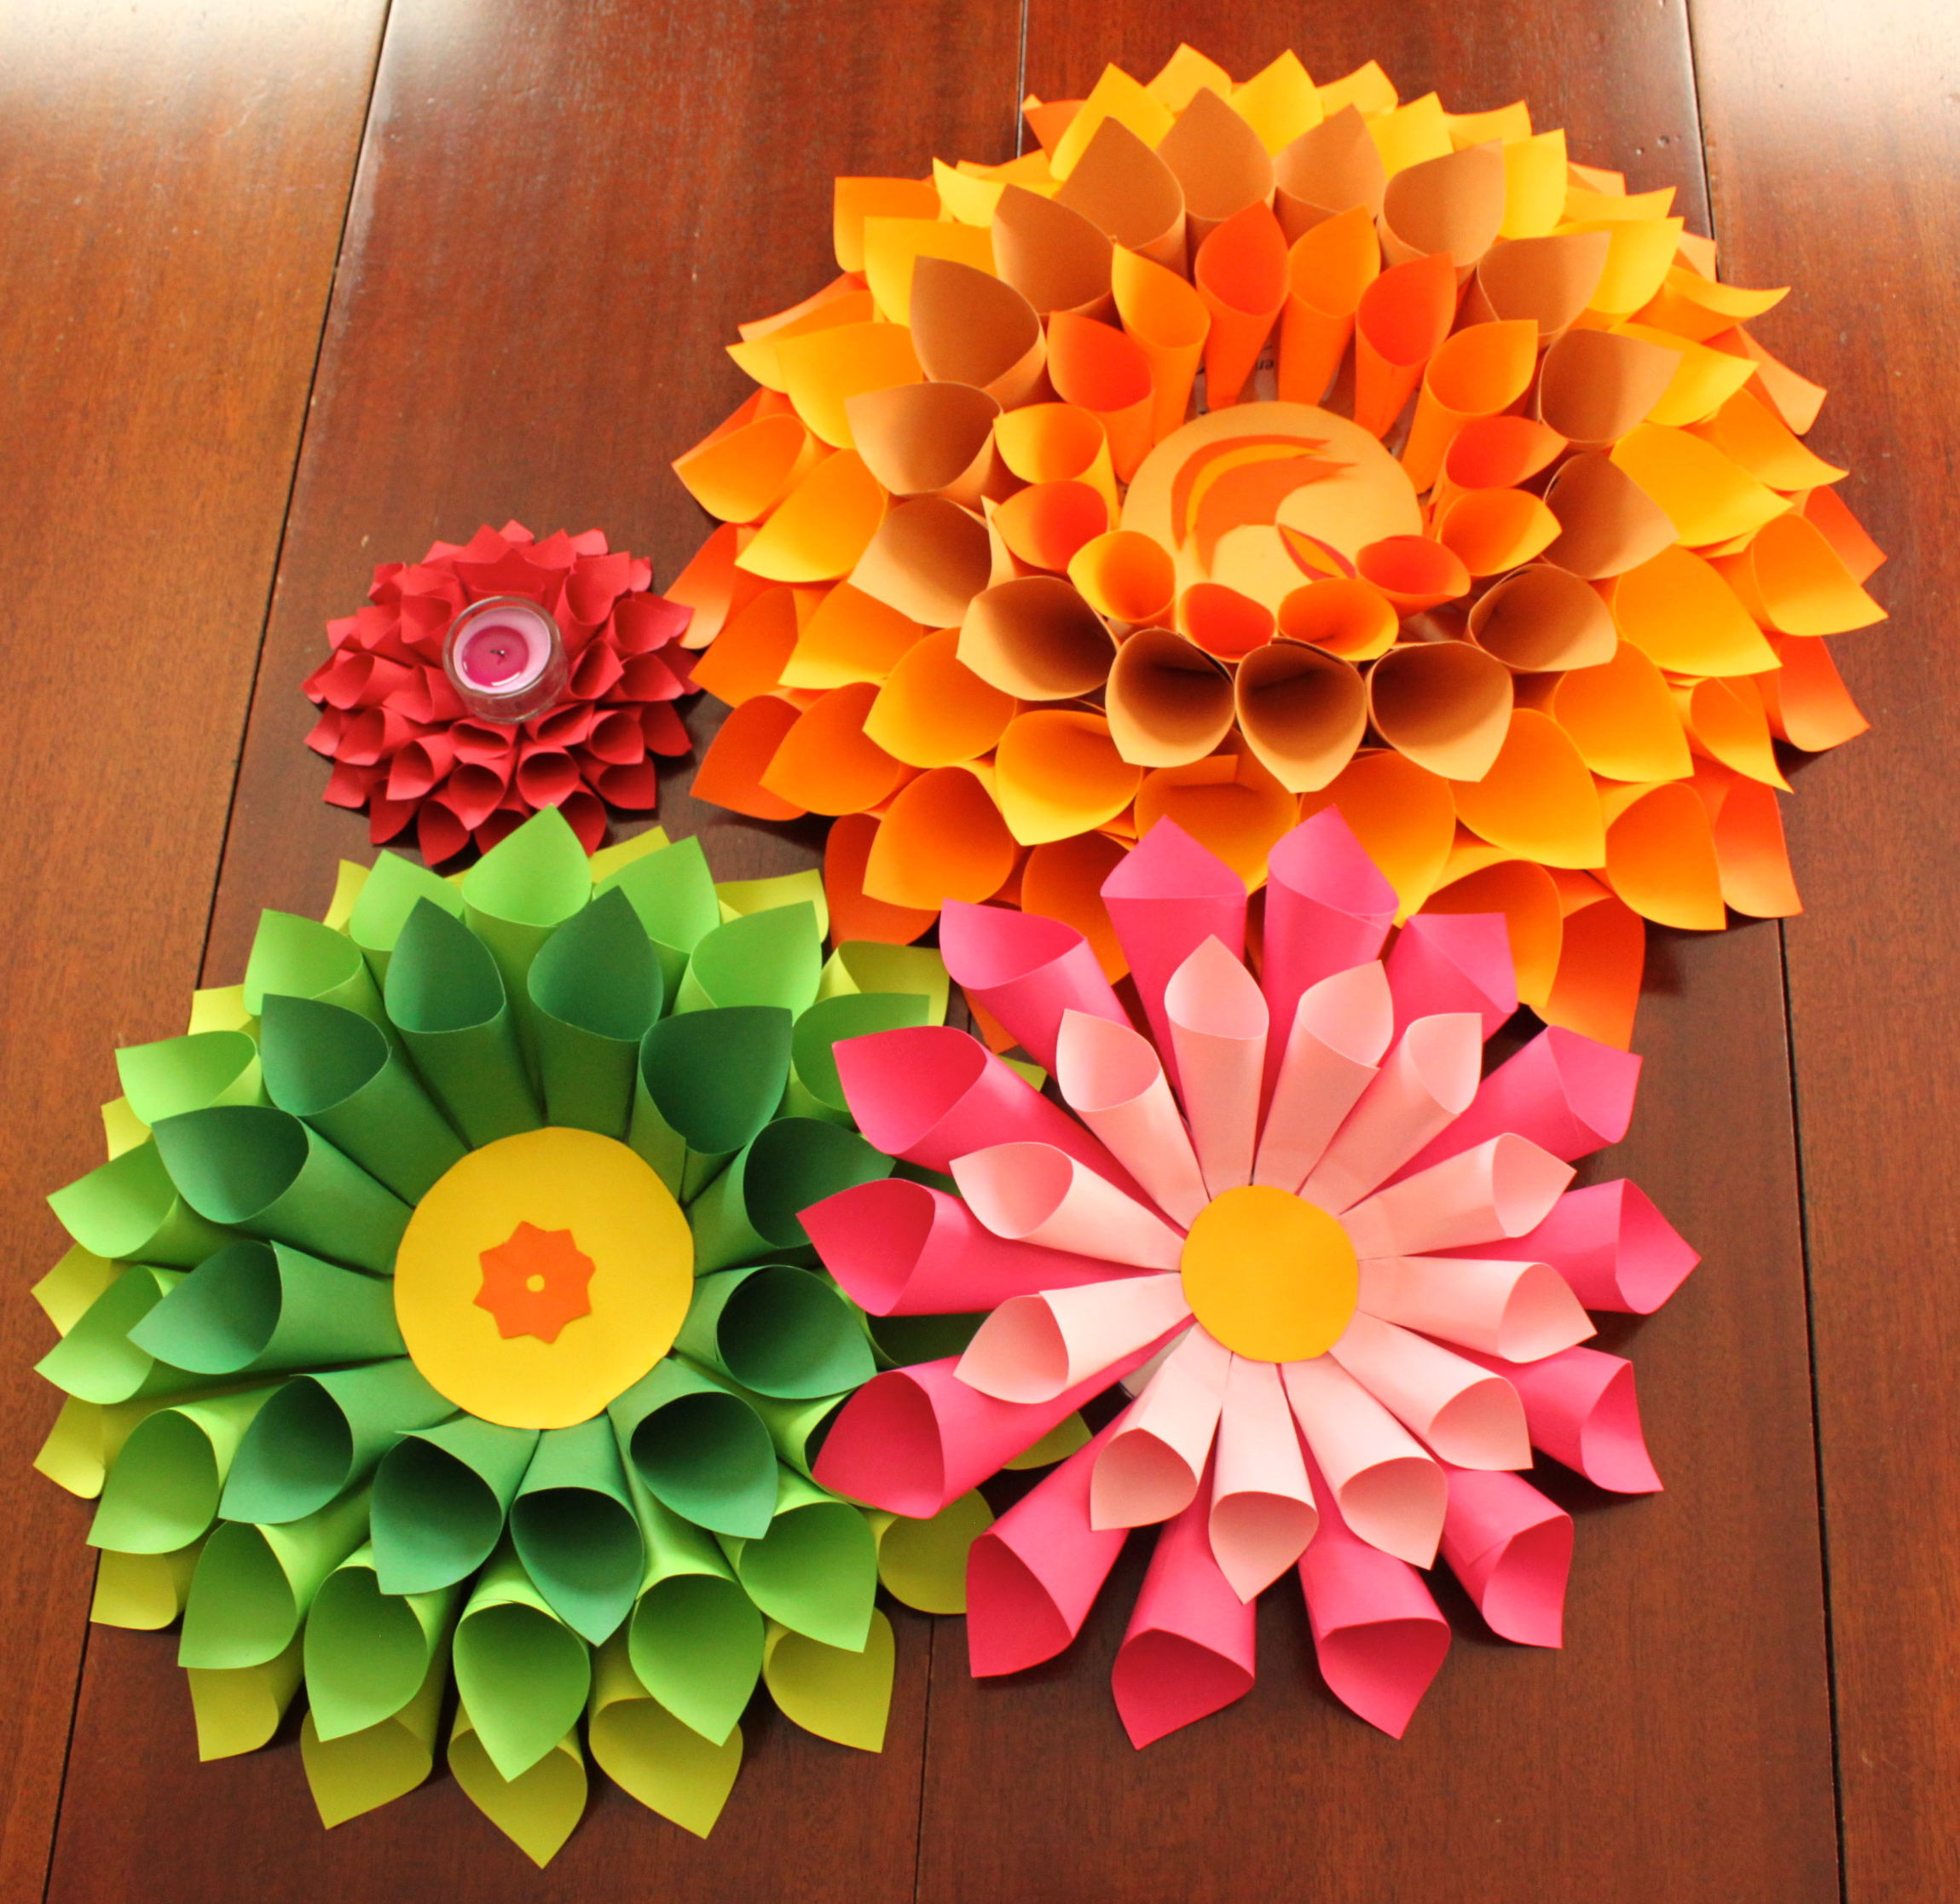 Dramatic dahlia diwali s4 creative me for Art and craft for diwali decoration